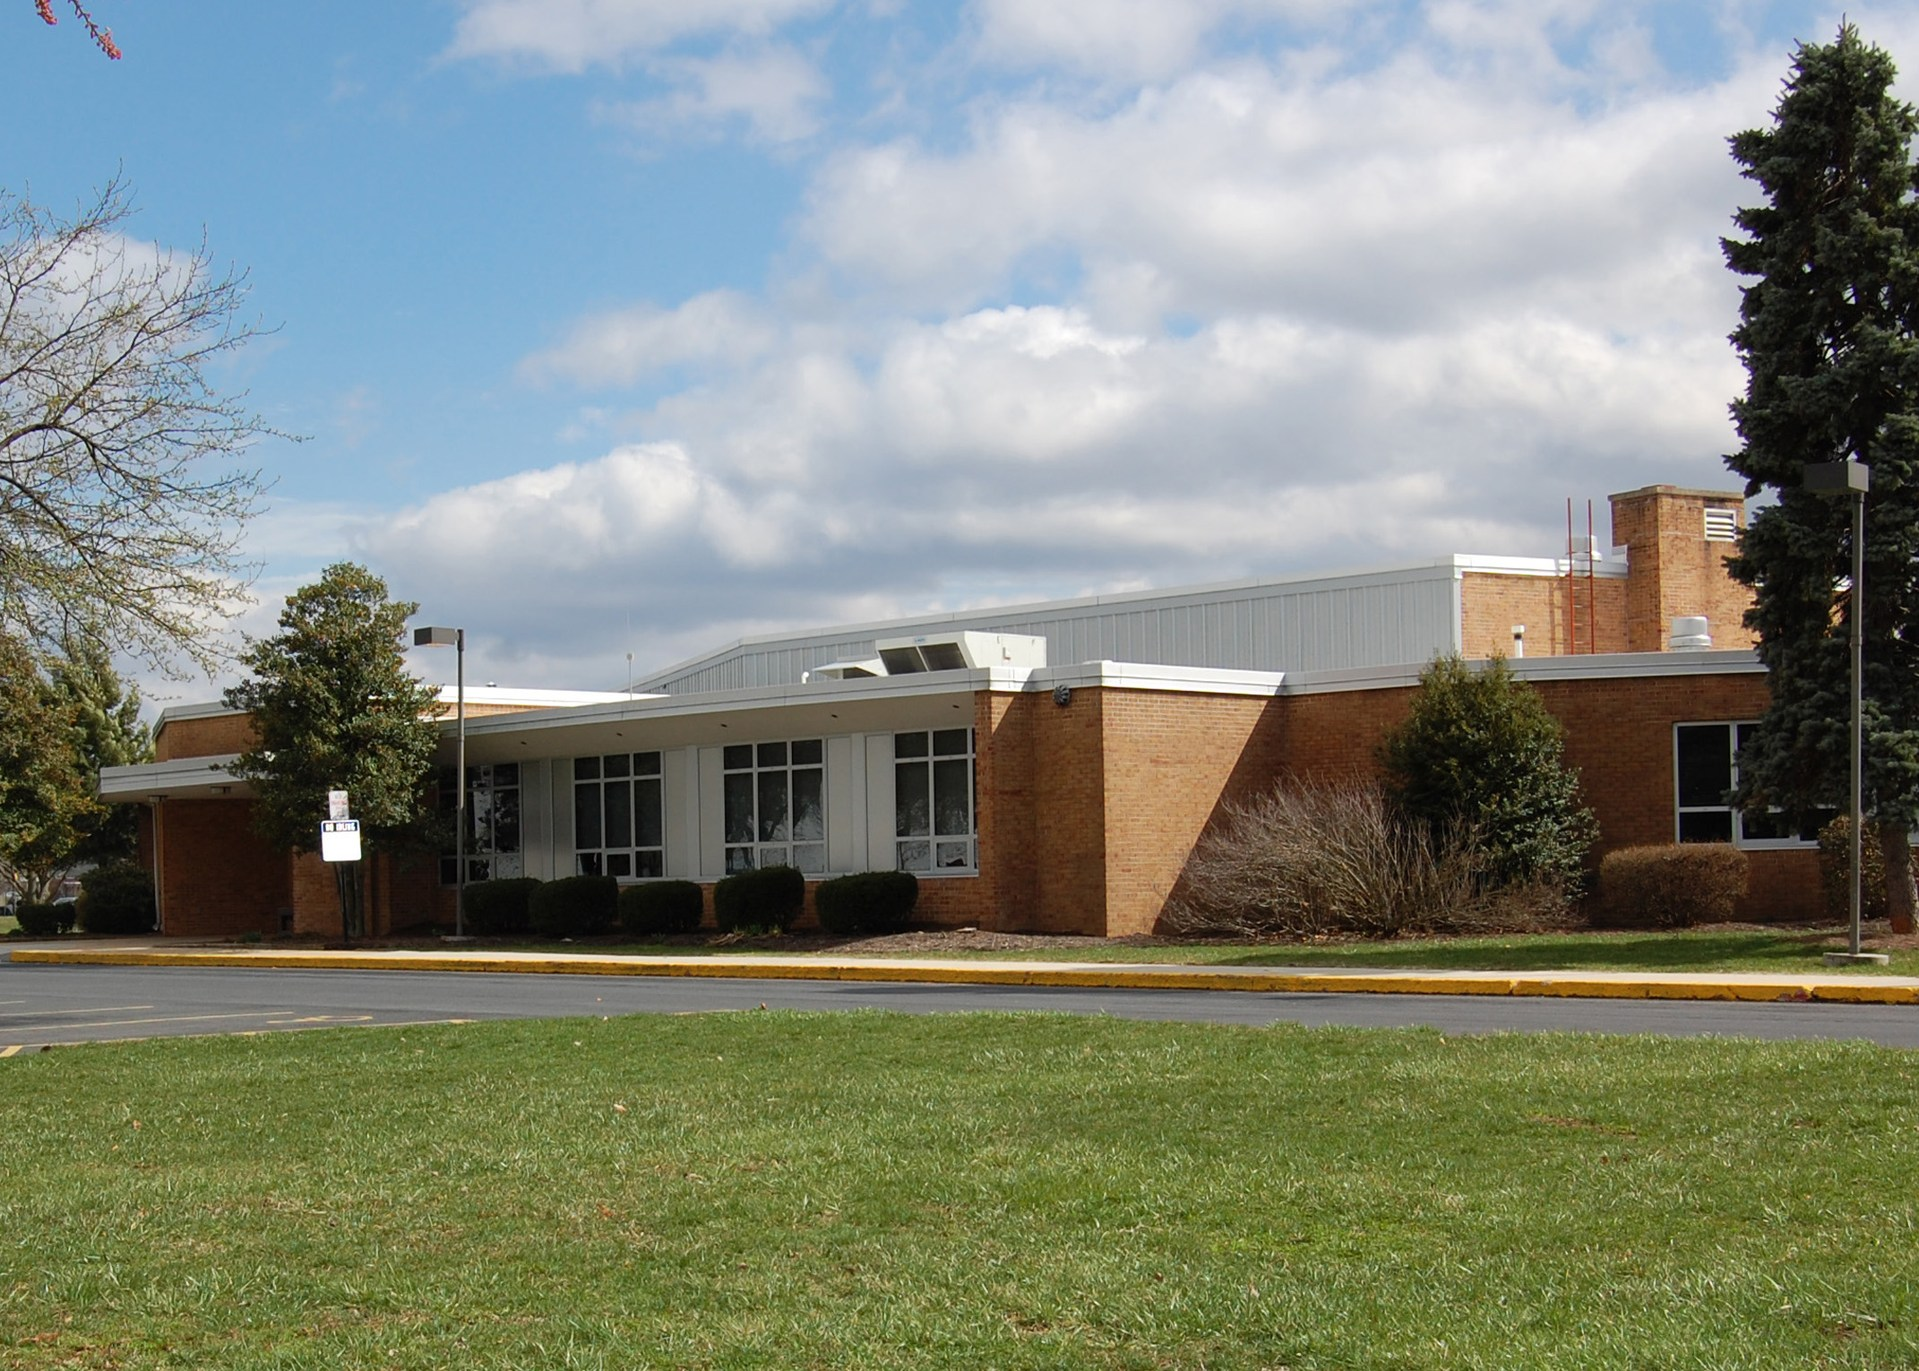 Picture of Northside Elementary School